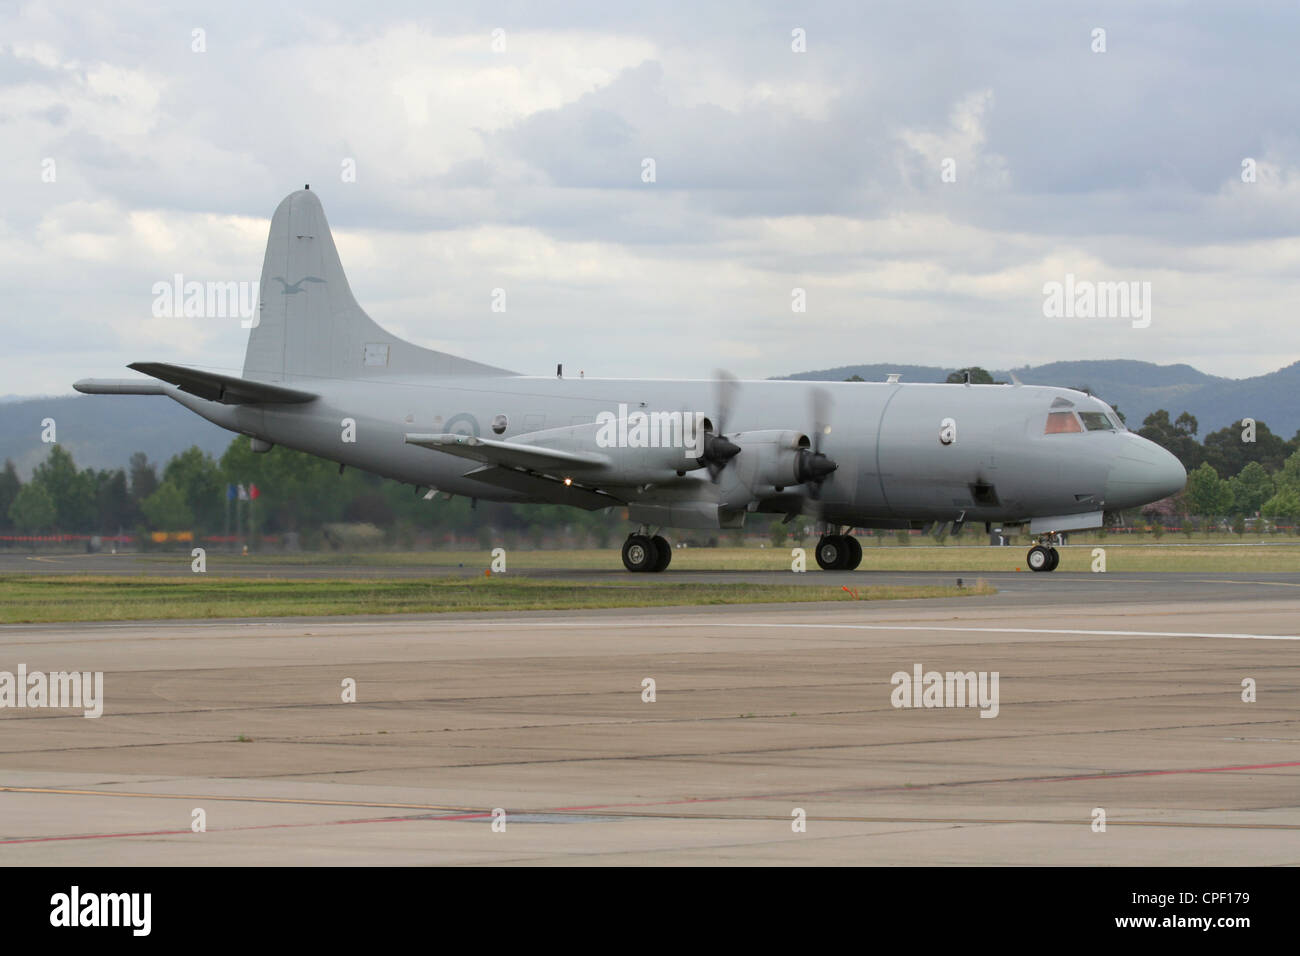 Lockheed P-3 Orion maritime patrol aircraft of the Royal Australian Air Force Stock Photo